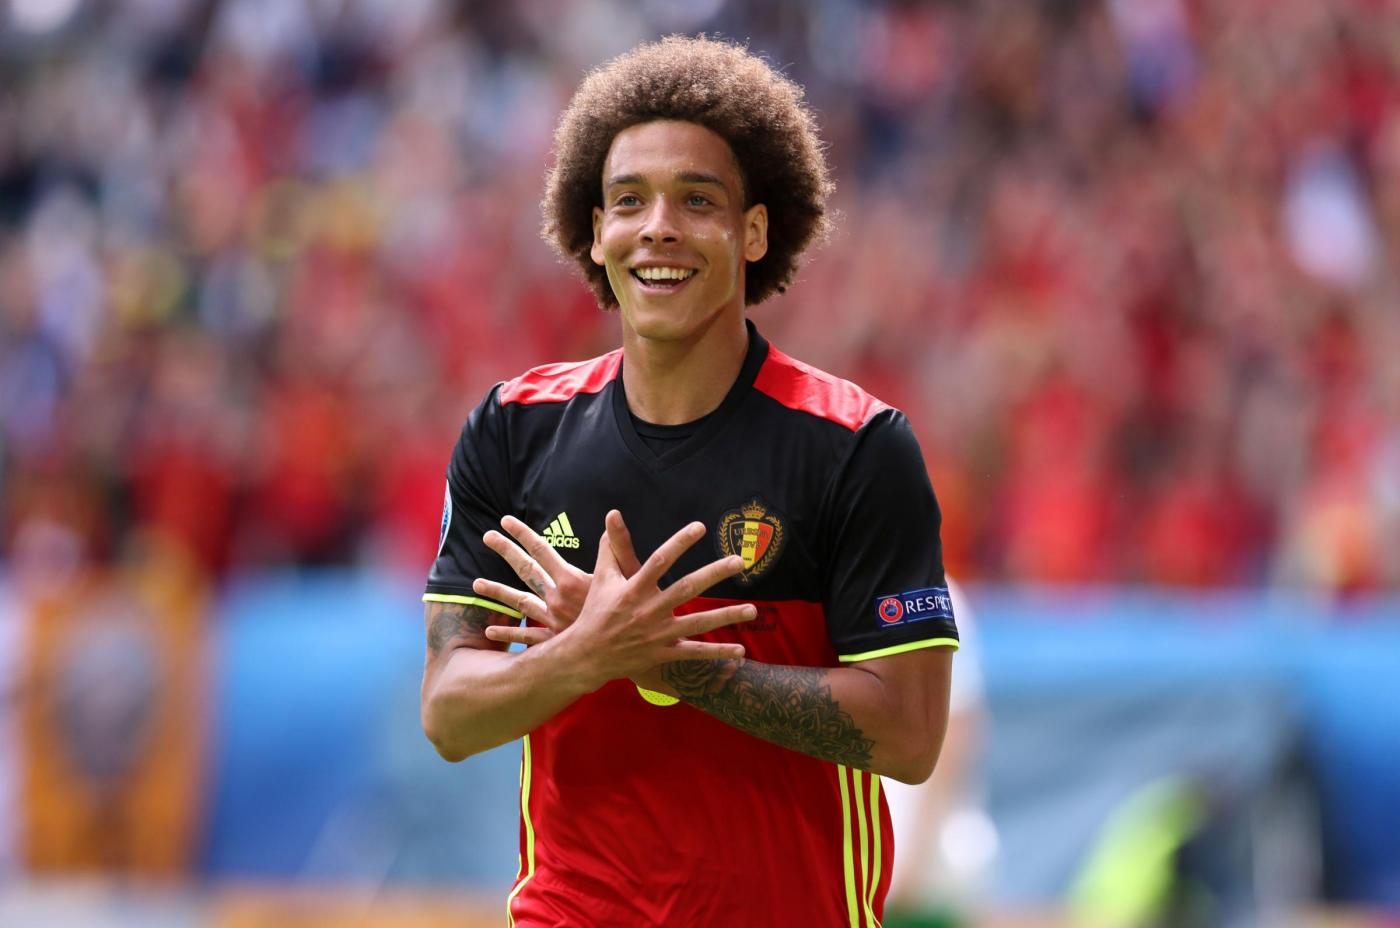 Juve Witsel